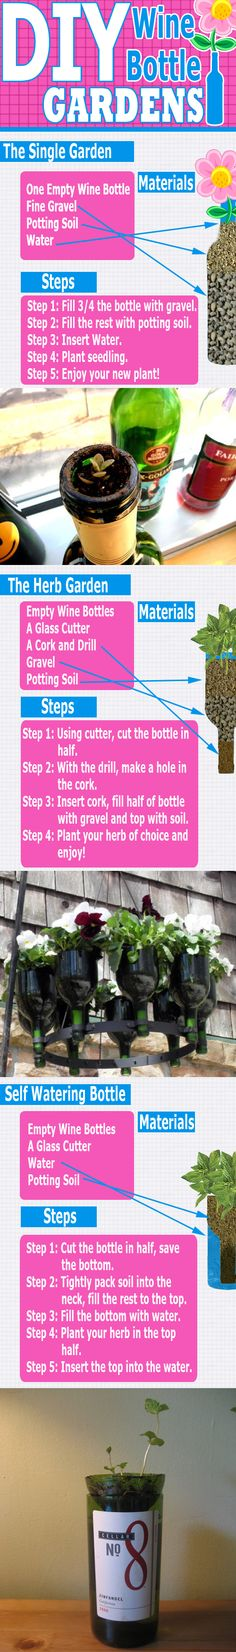 DIY Wine bottle garden!